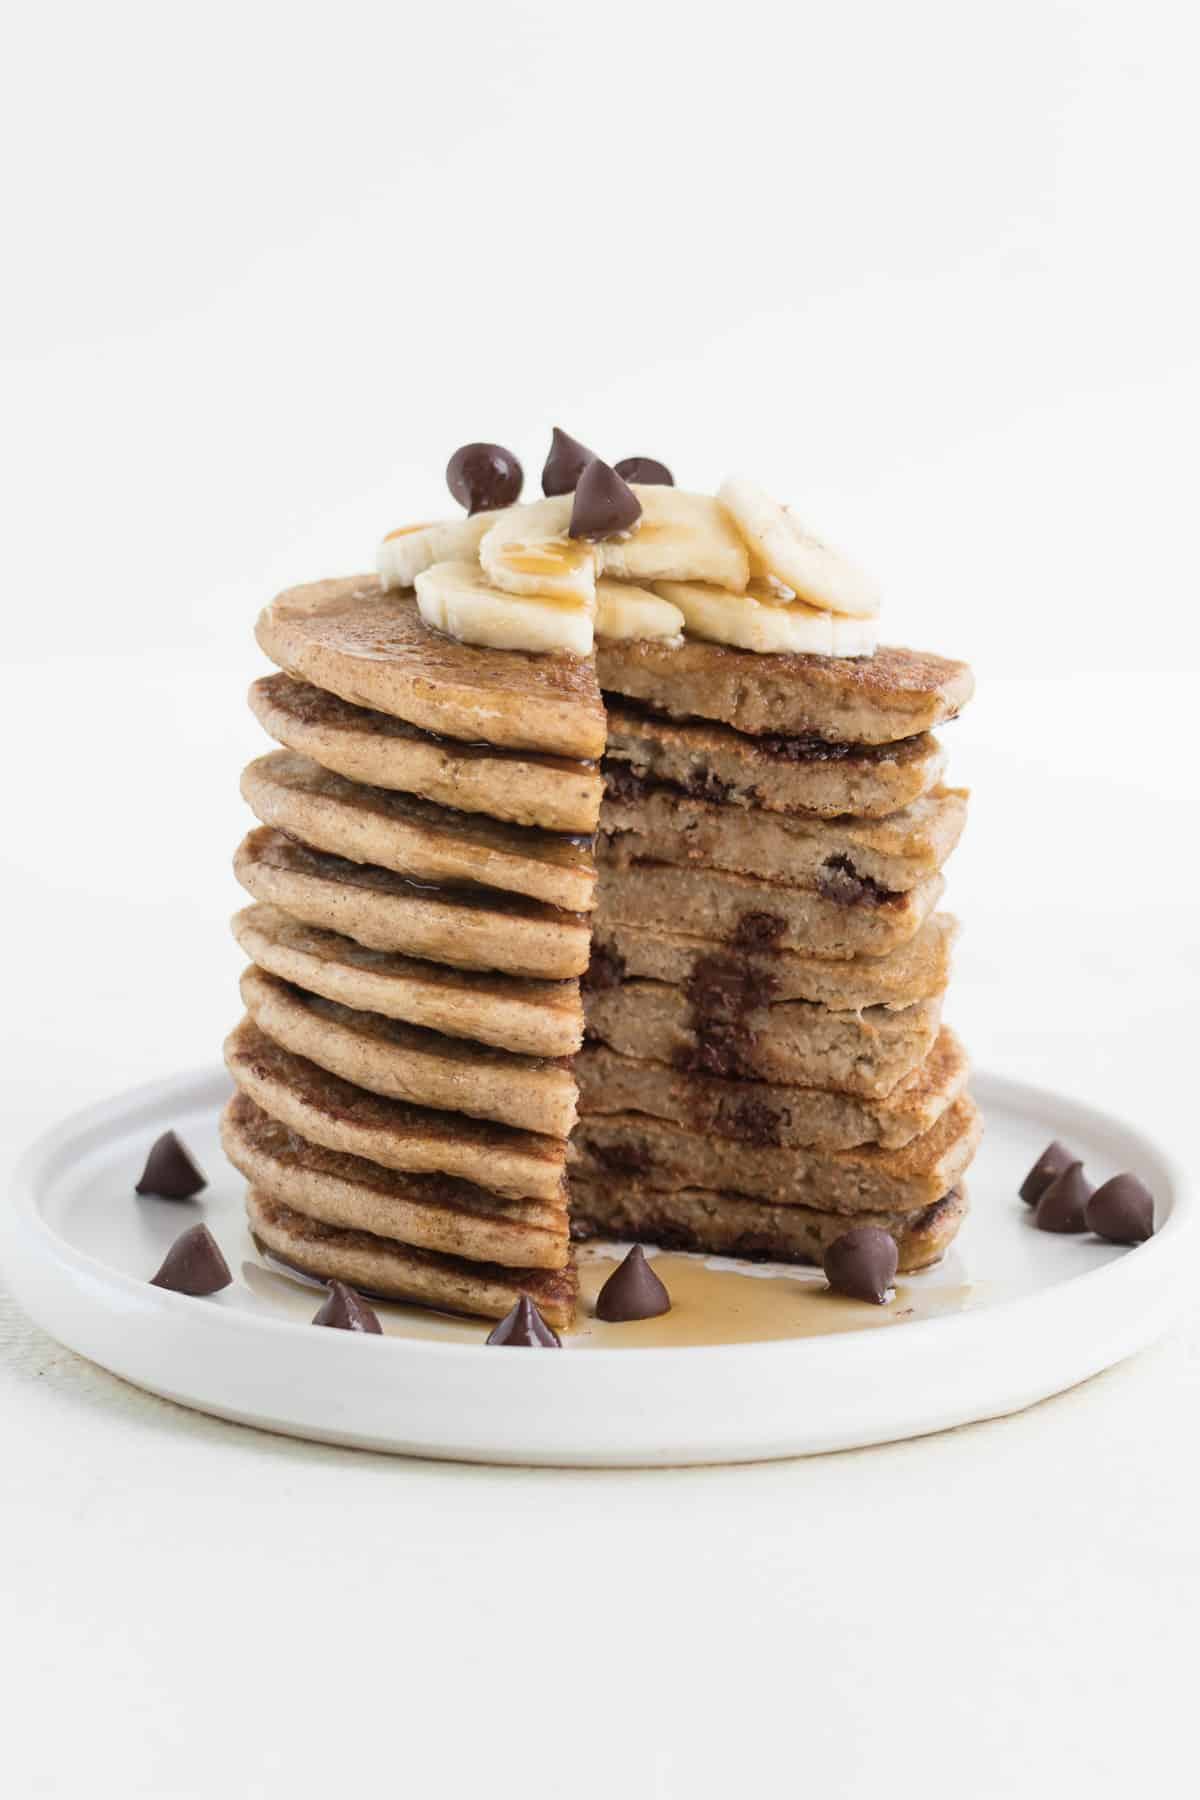 a sliced stack of banana pancakes with chocolate chips and banana